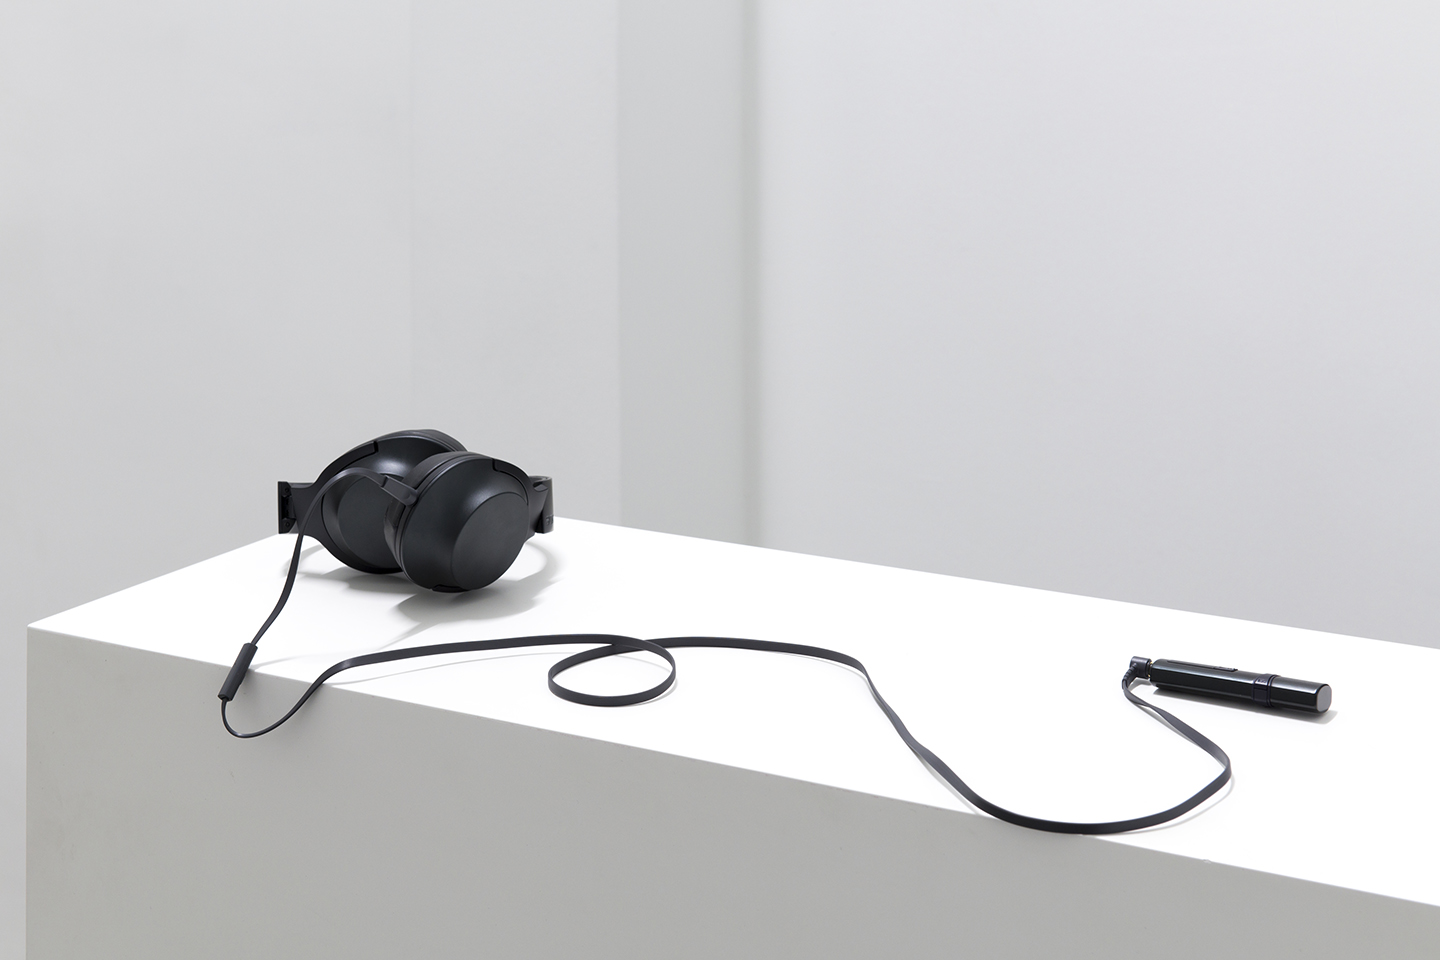 Sean Snyder Aurora Boraelis At Galerie Neu Berlin Mousse Magazine Electrical Wires And Cables Meccanismo Complesso